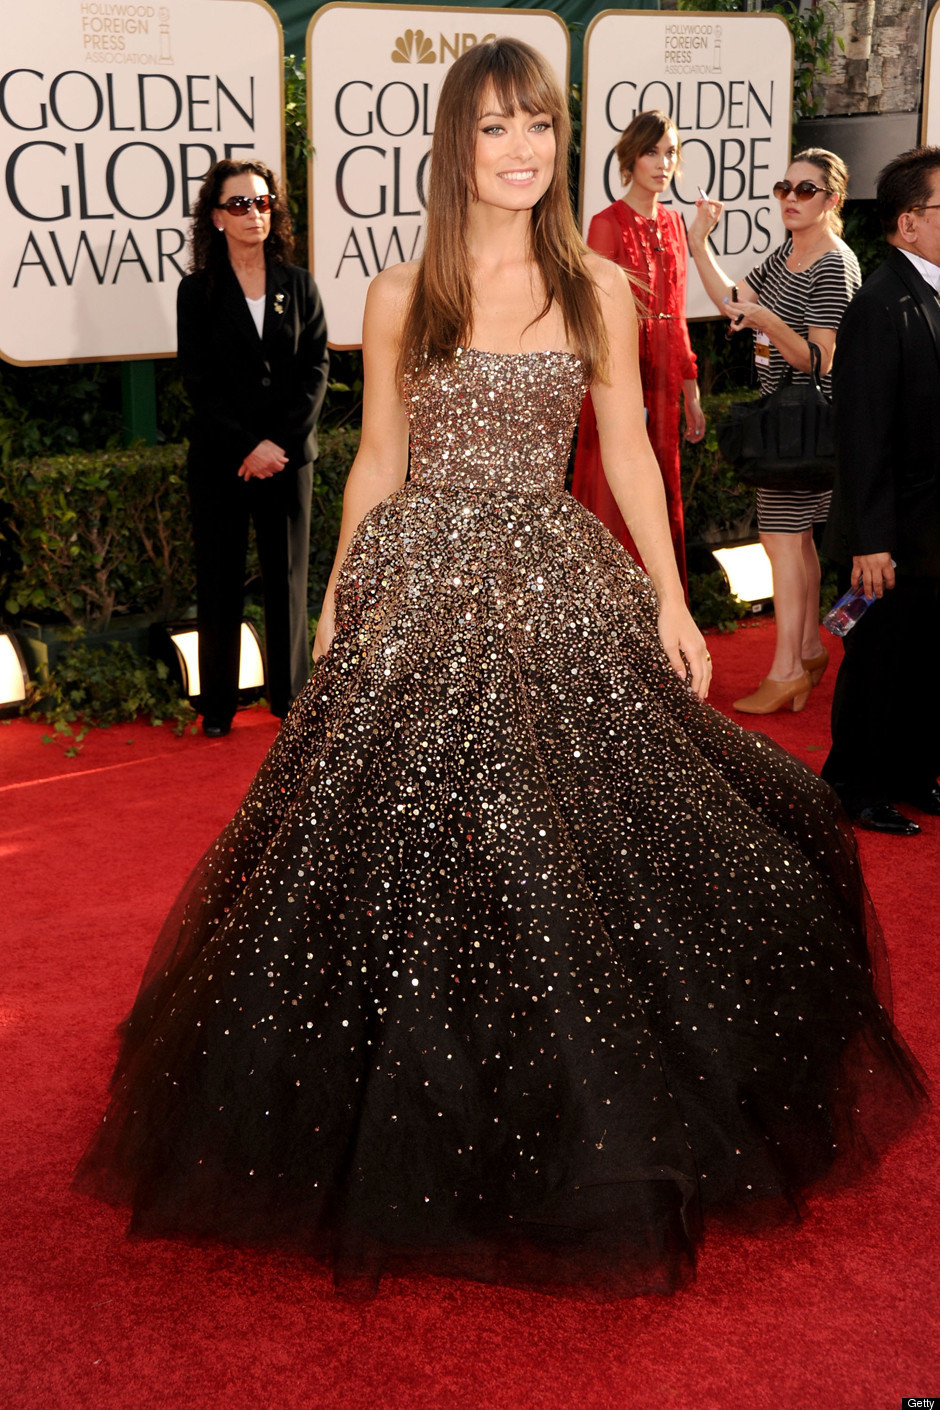 Elf 39 s stilettos the prettiest red carpet gowns of 2011 - Dresses from the red carpet ...